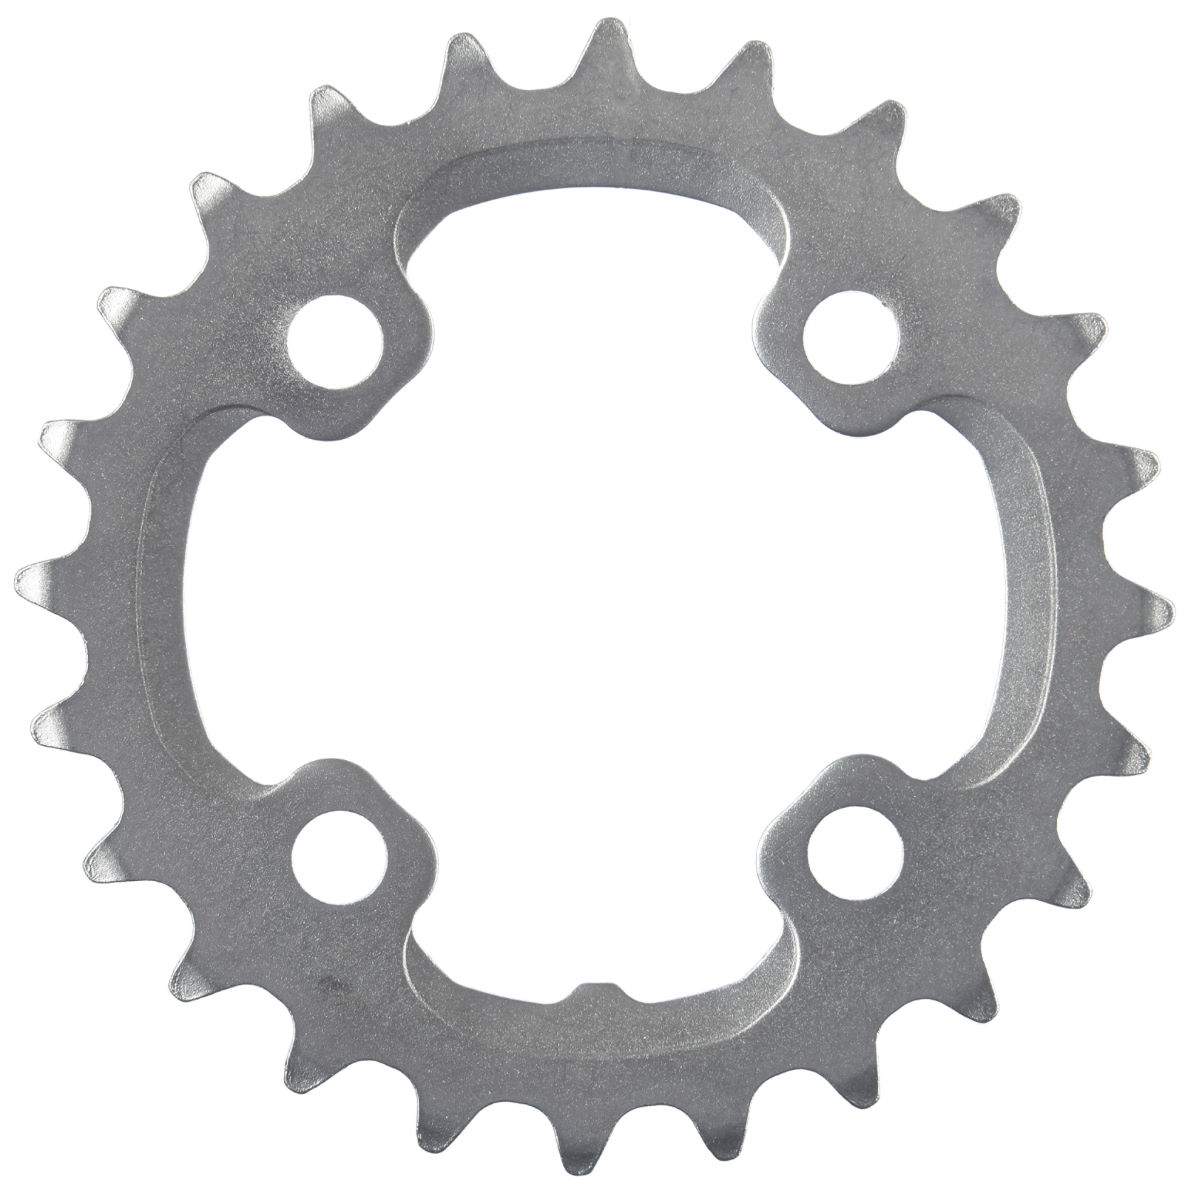 Shimano Xt Fcm785 10 Speed Double Chainring - Aj Type 28t 10 Speed